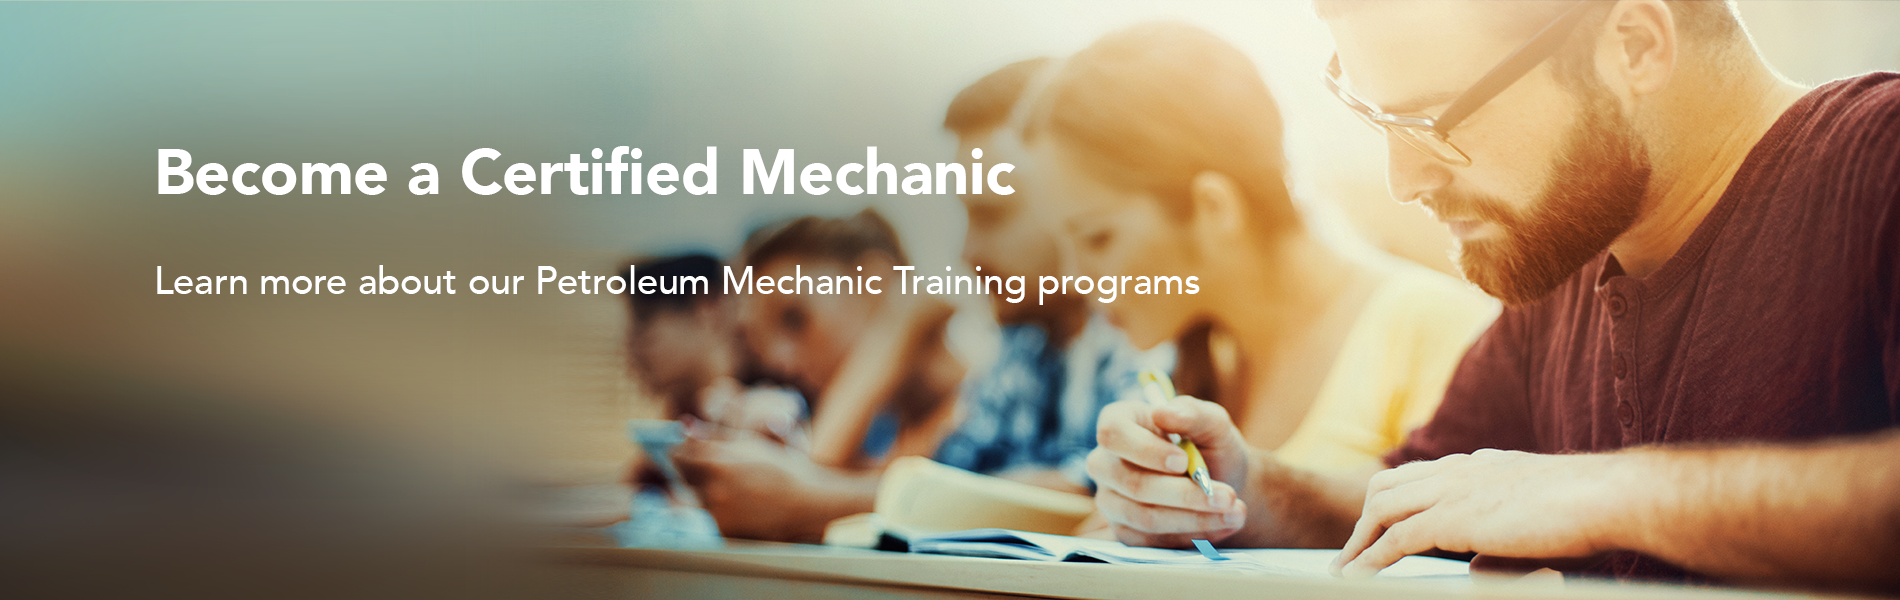 Become a certified mechanic- learm more about our Petroleum Mechanic training programs